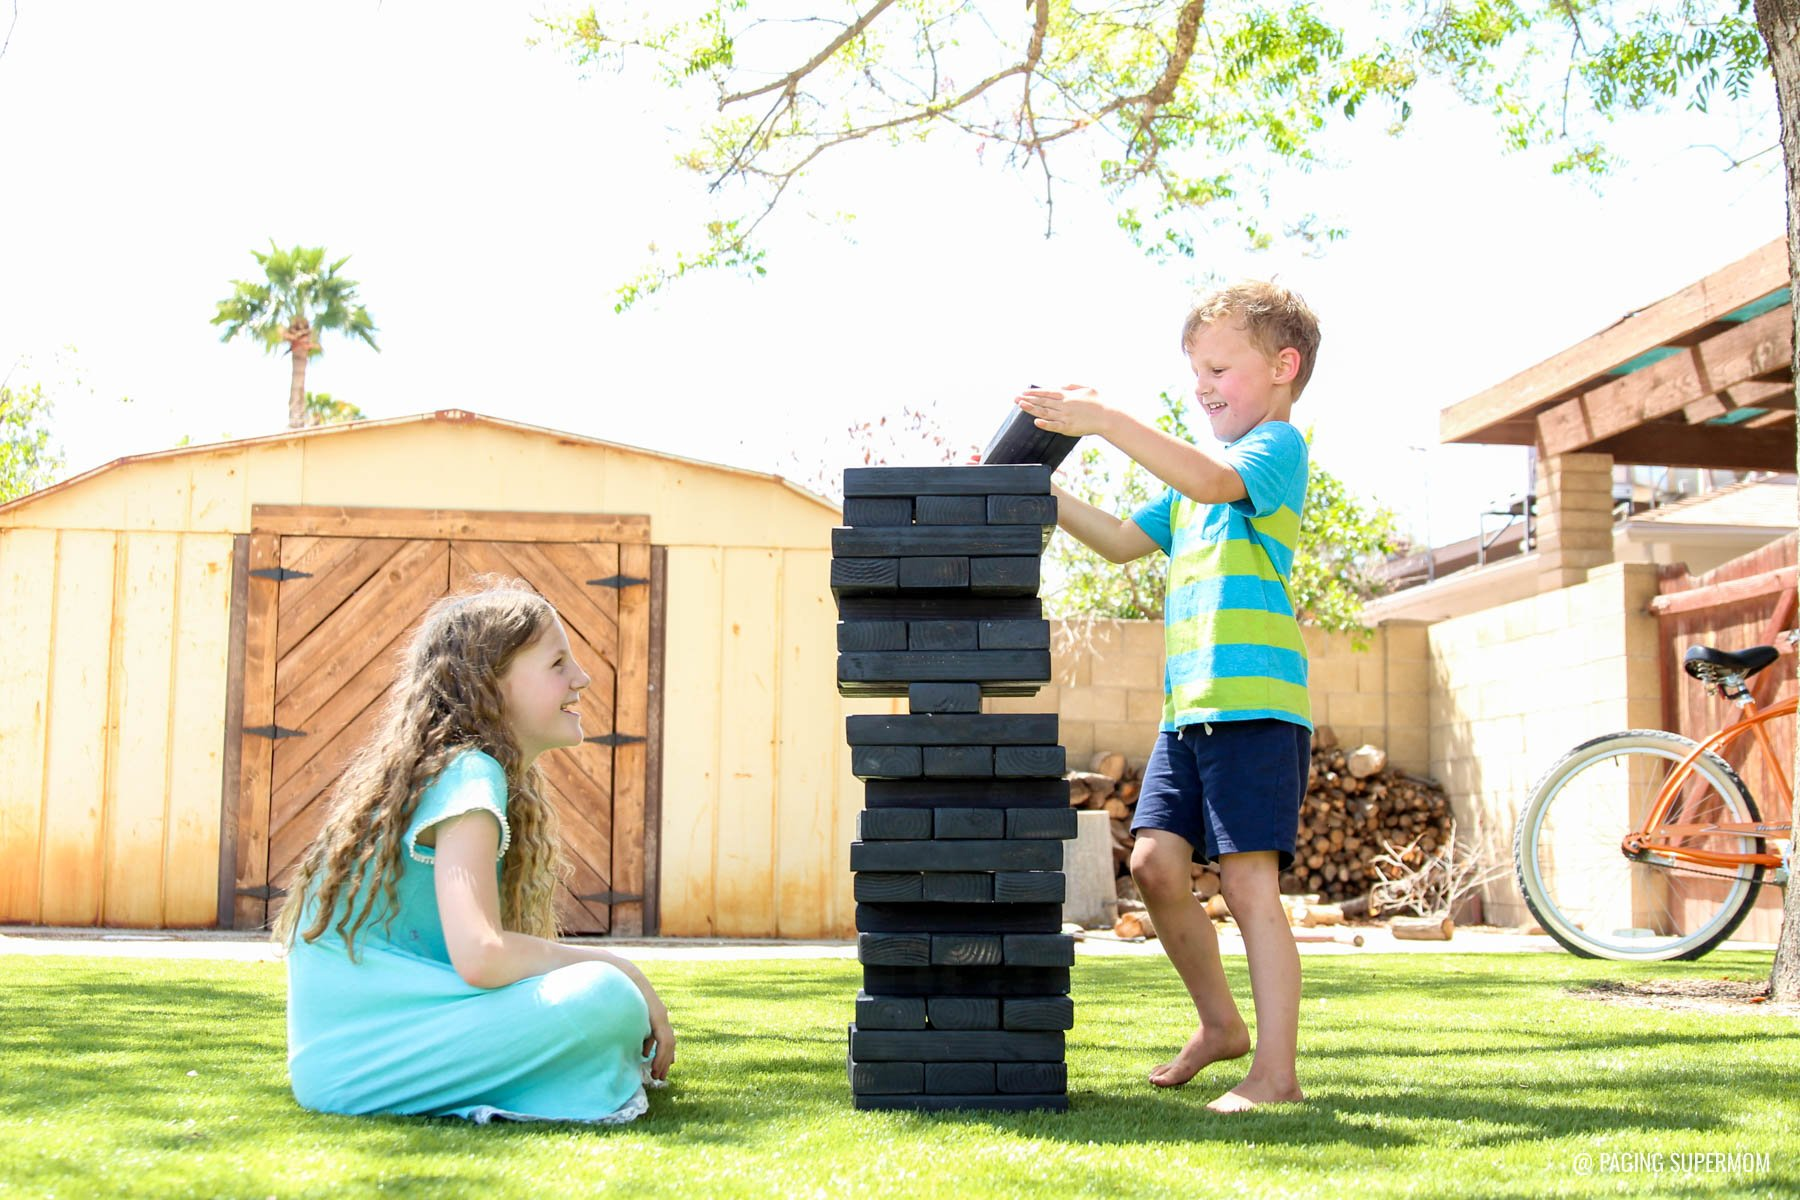 Backyard Jenga Game - DIY Backyard Games plans from @HomeDepot via @PagingSupermom